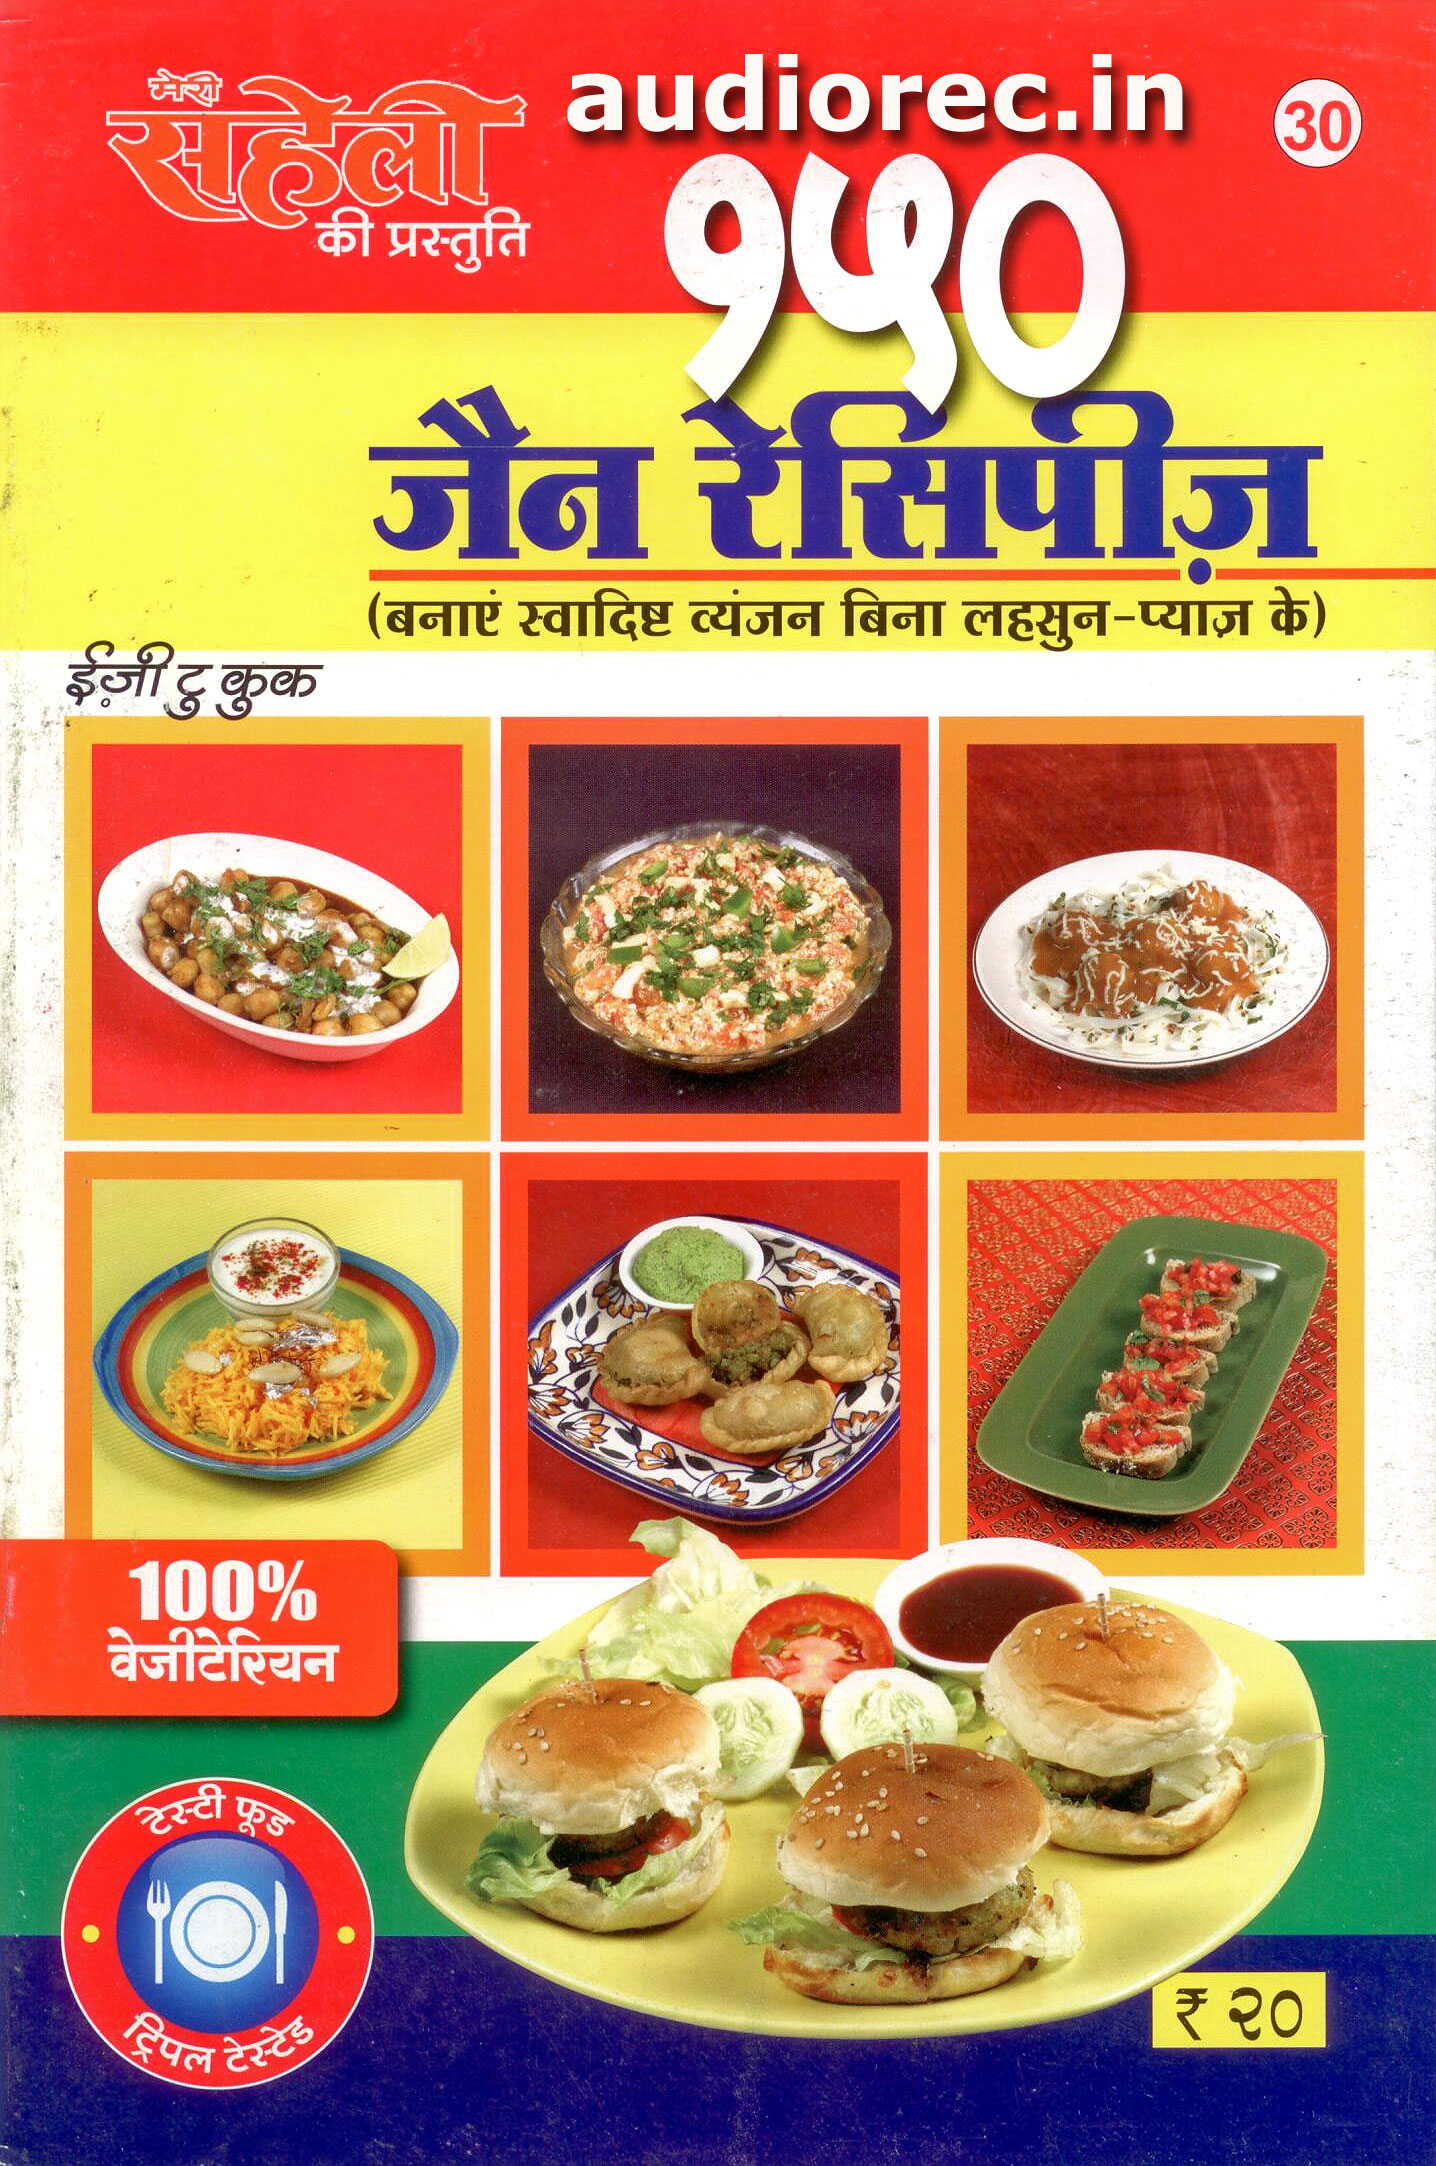 Audiorec online indian music store cookery hindi jain food recipes hindi book no 30 forumfinder Gallery